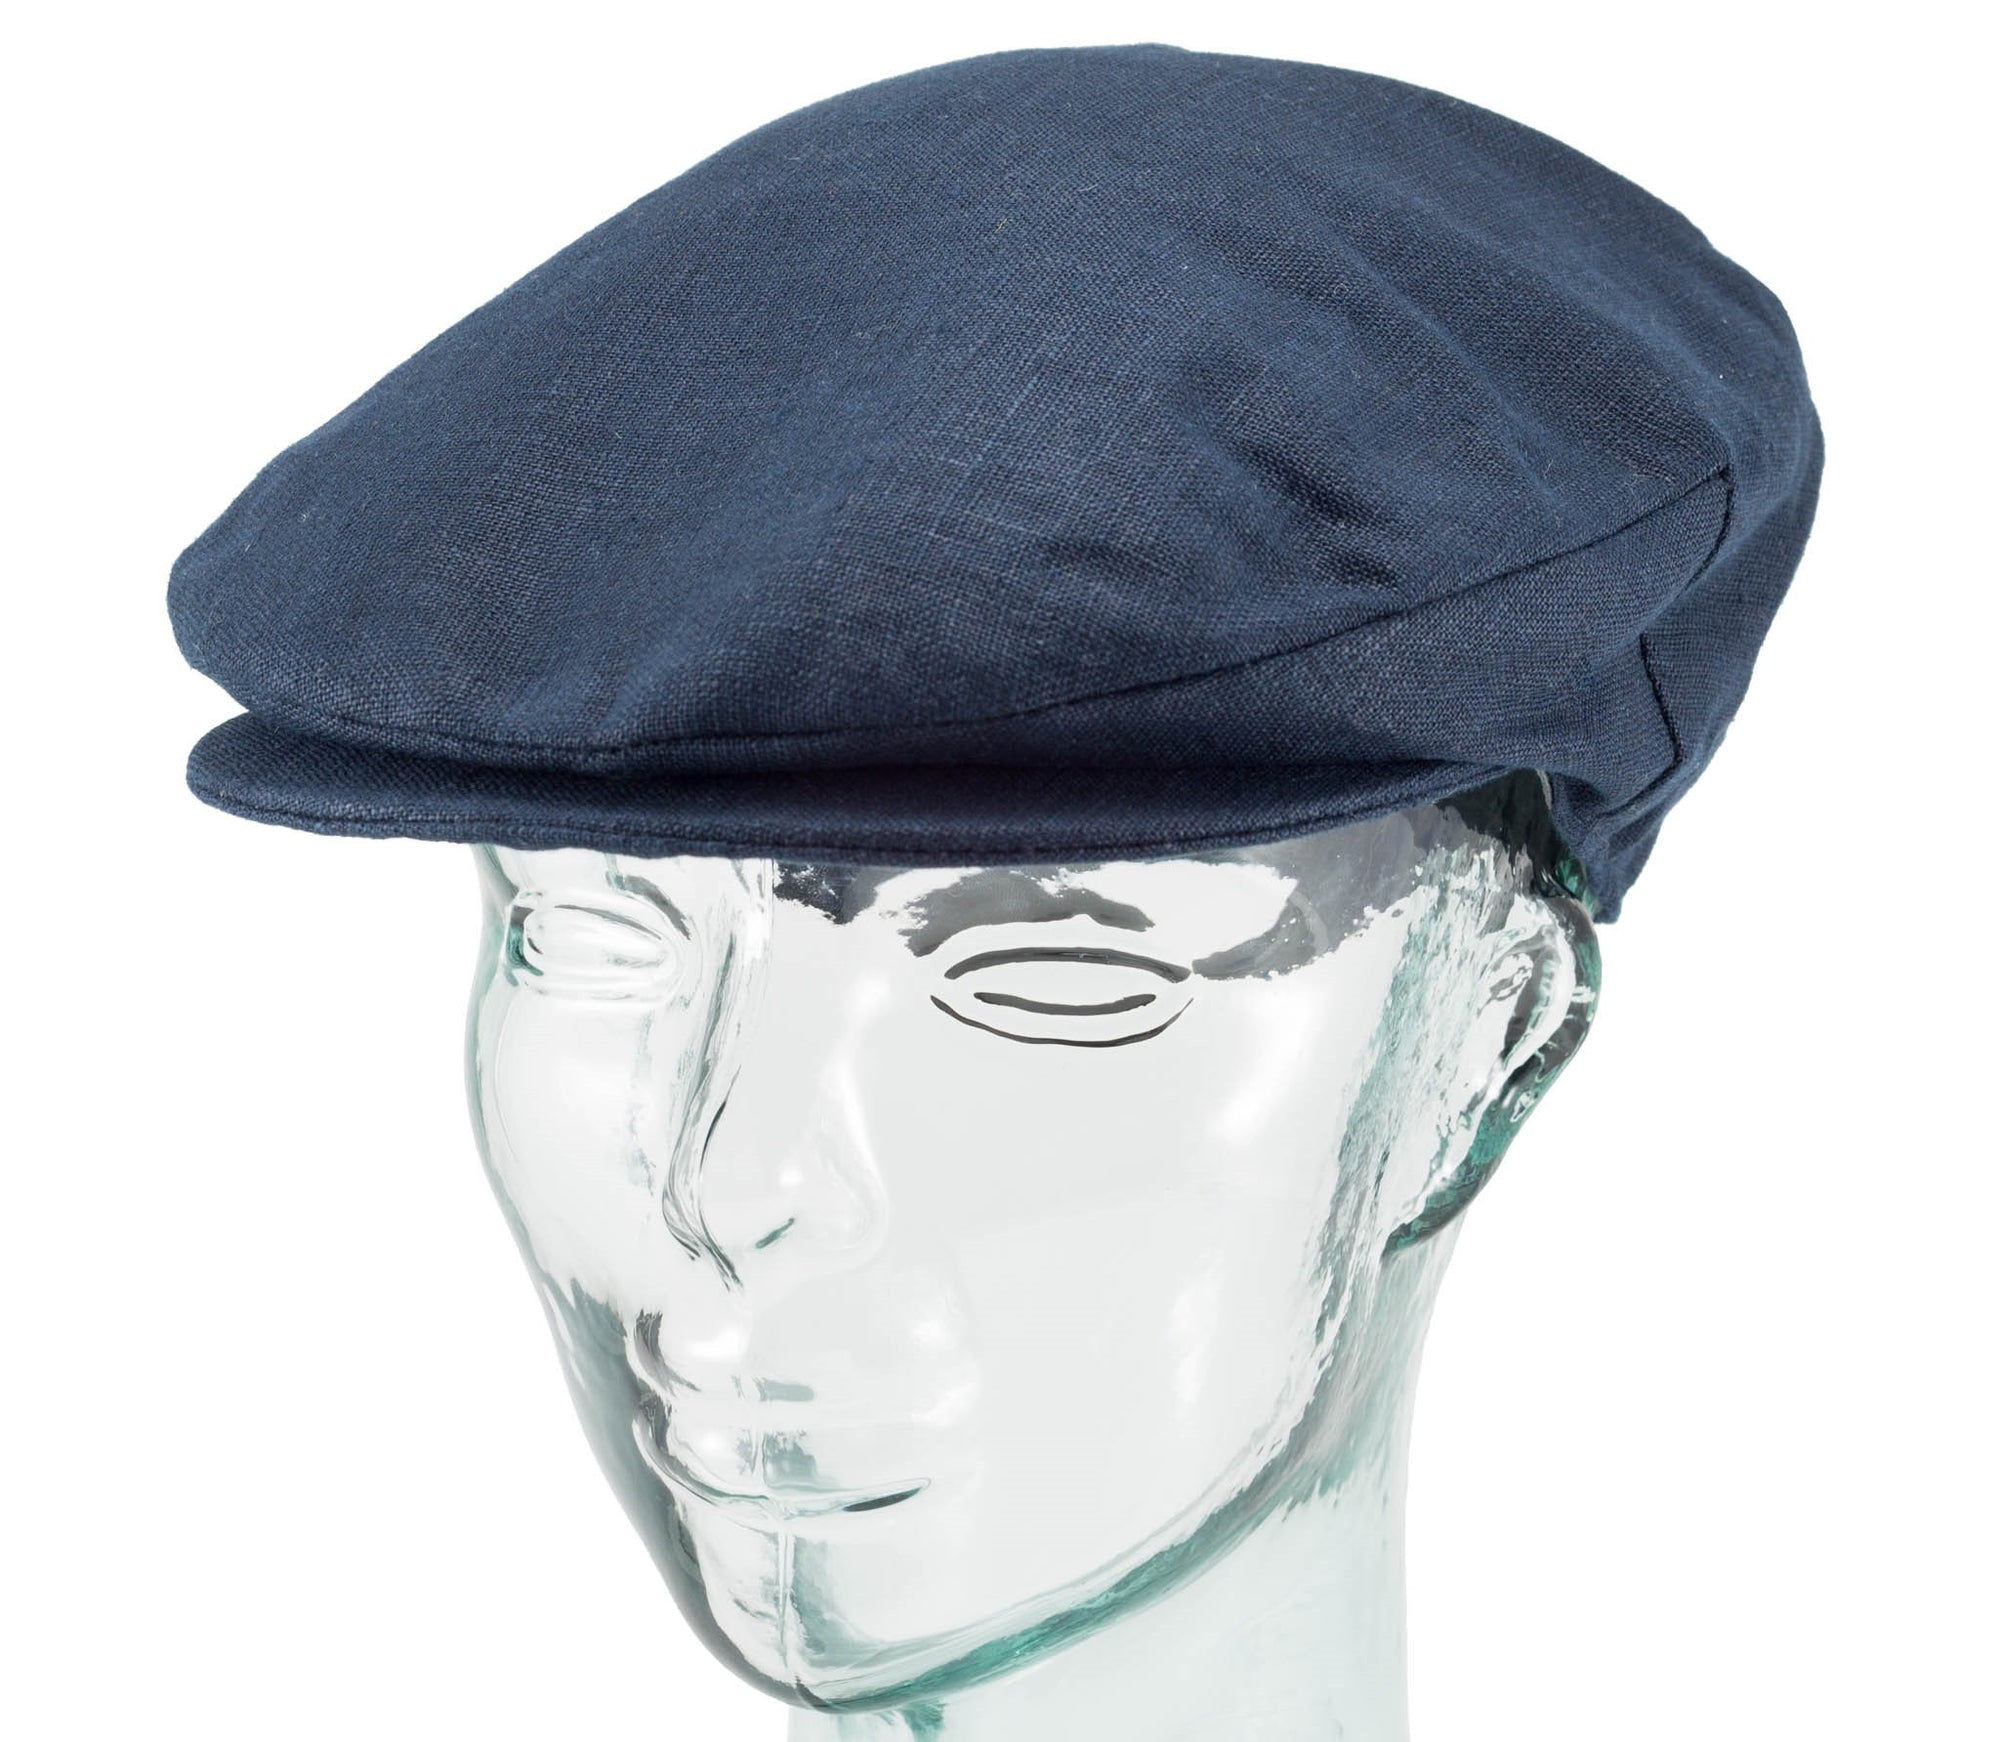 Hanna Hats Navy Linen Vintage Cap, offset side view